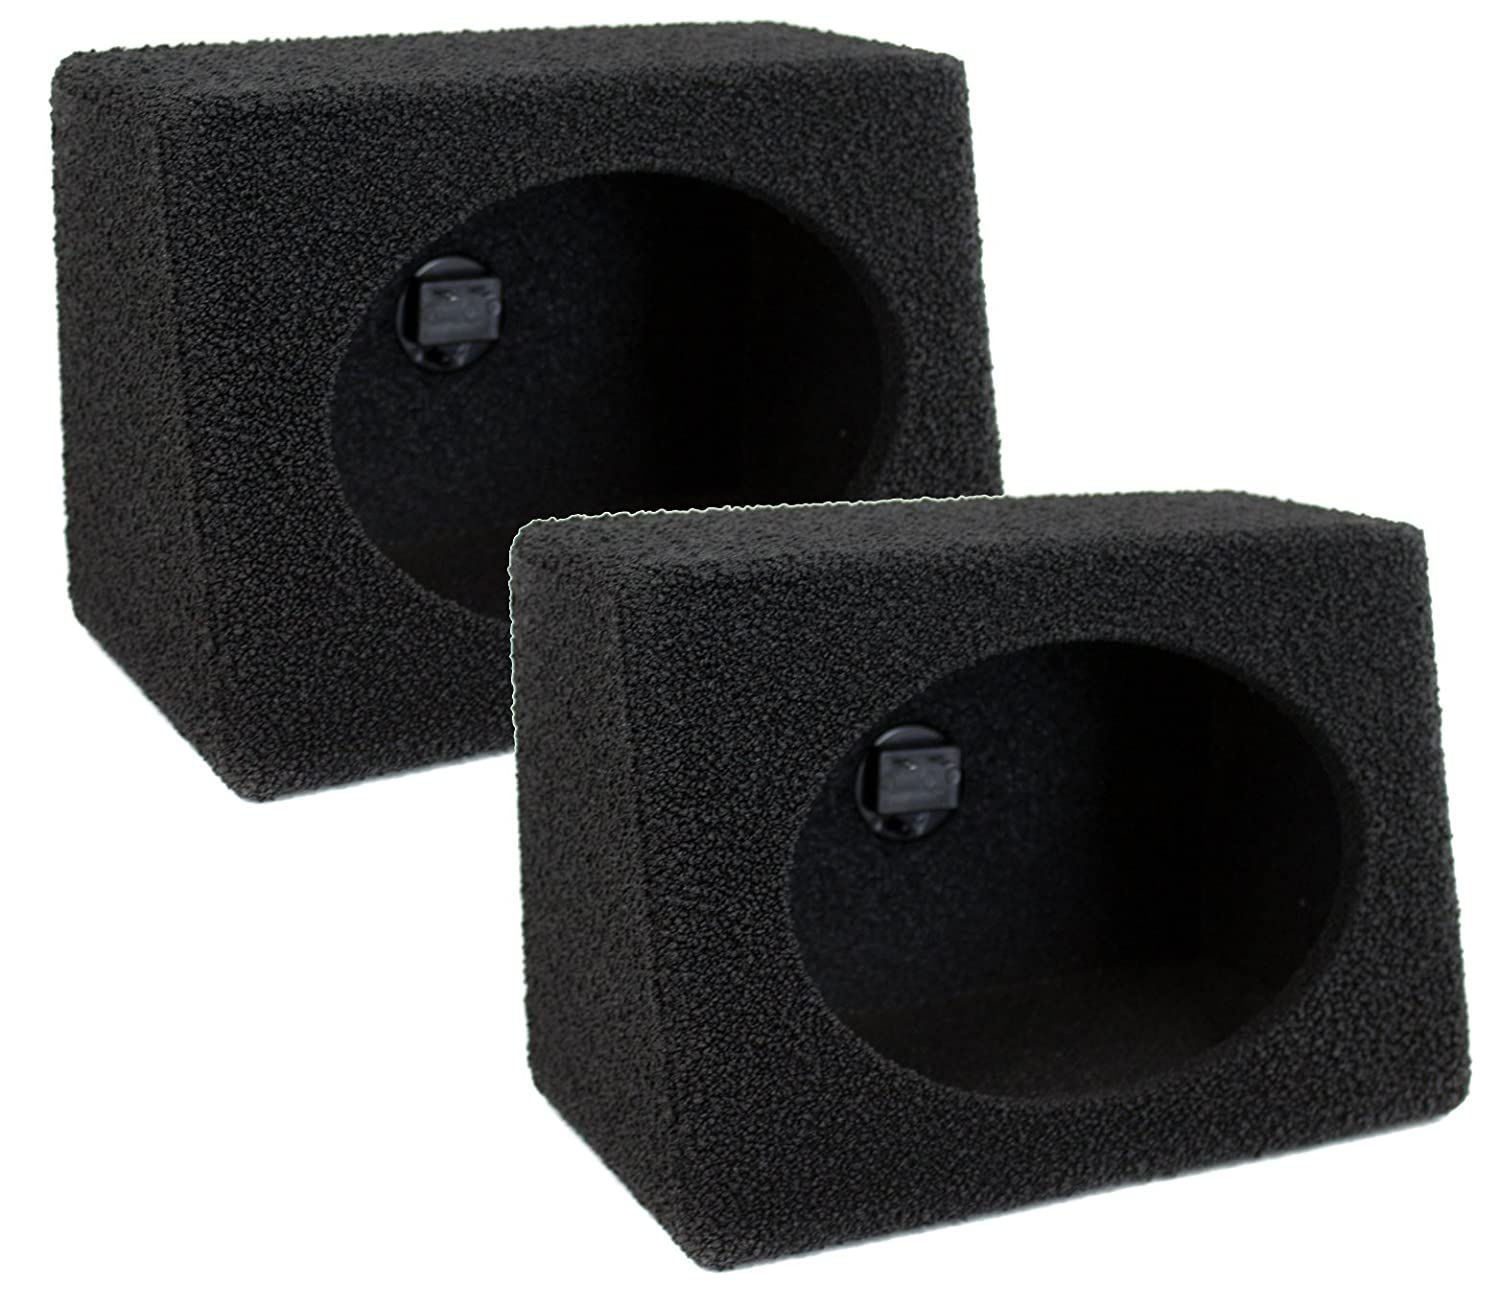 Q Power QBTW6X9 Single 6 x 9 Inches Speaker Boxes with Durable Bed Liner Spray